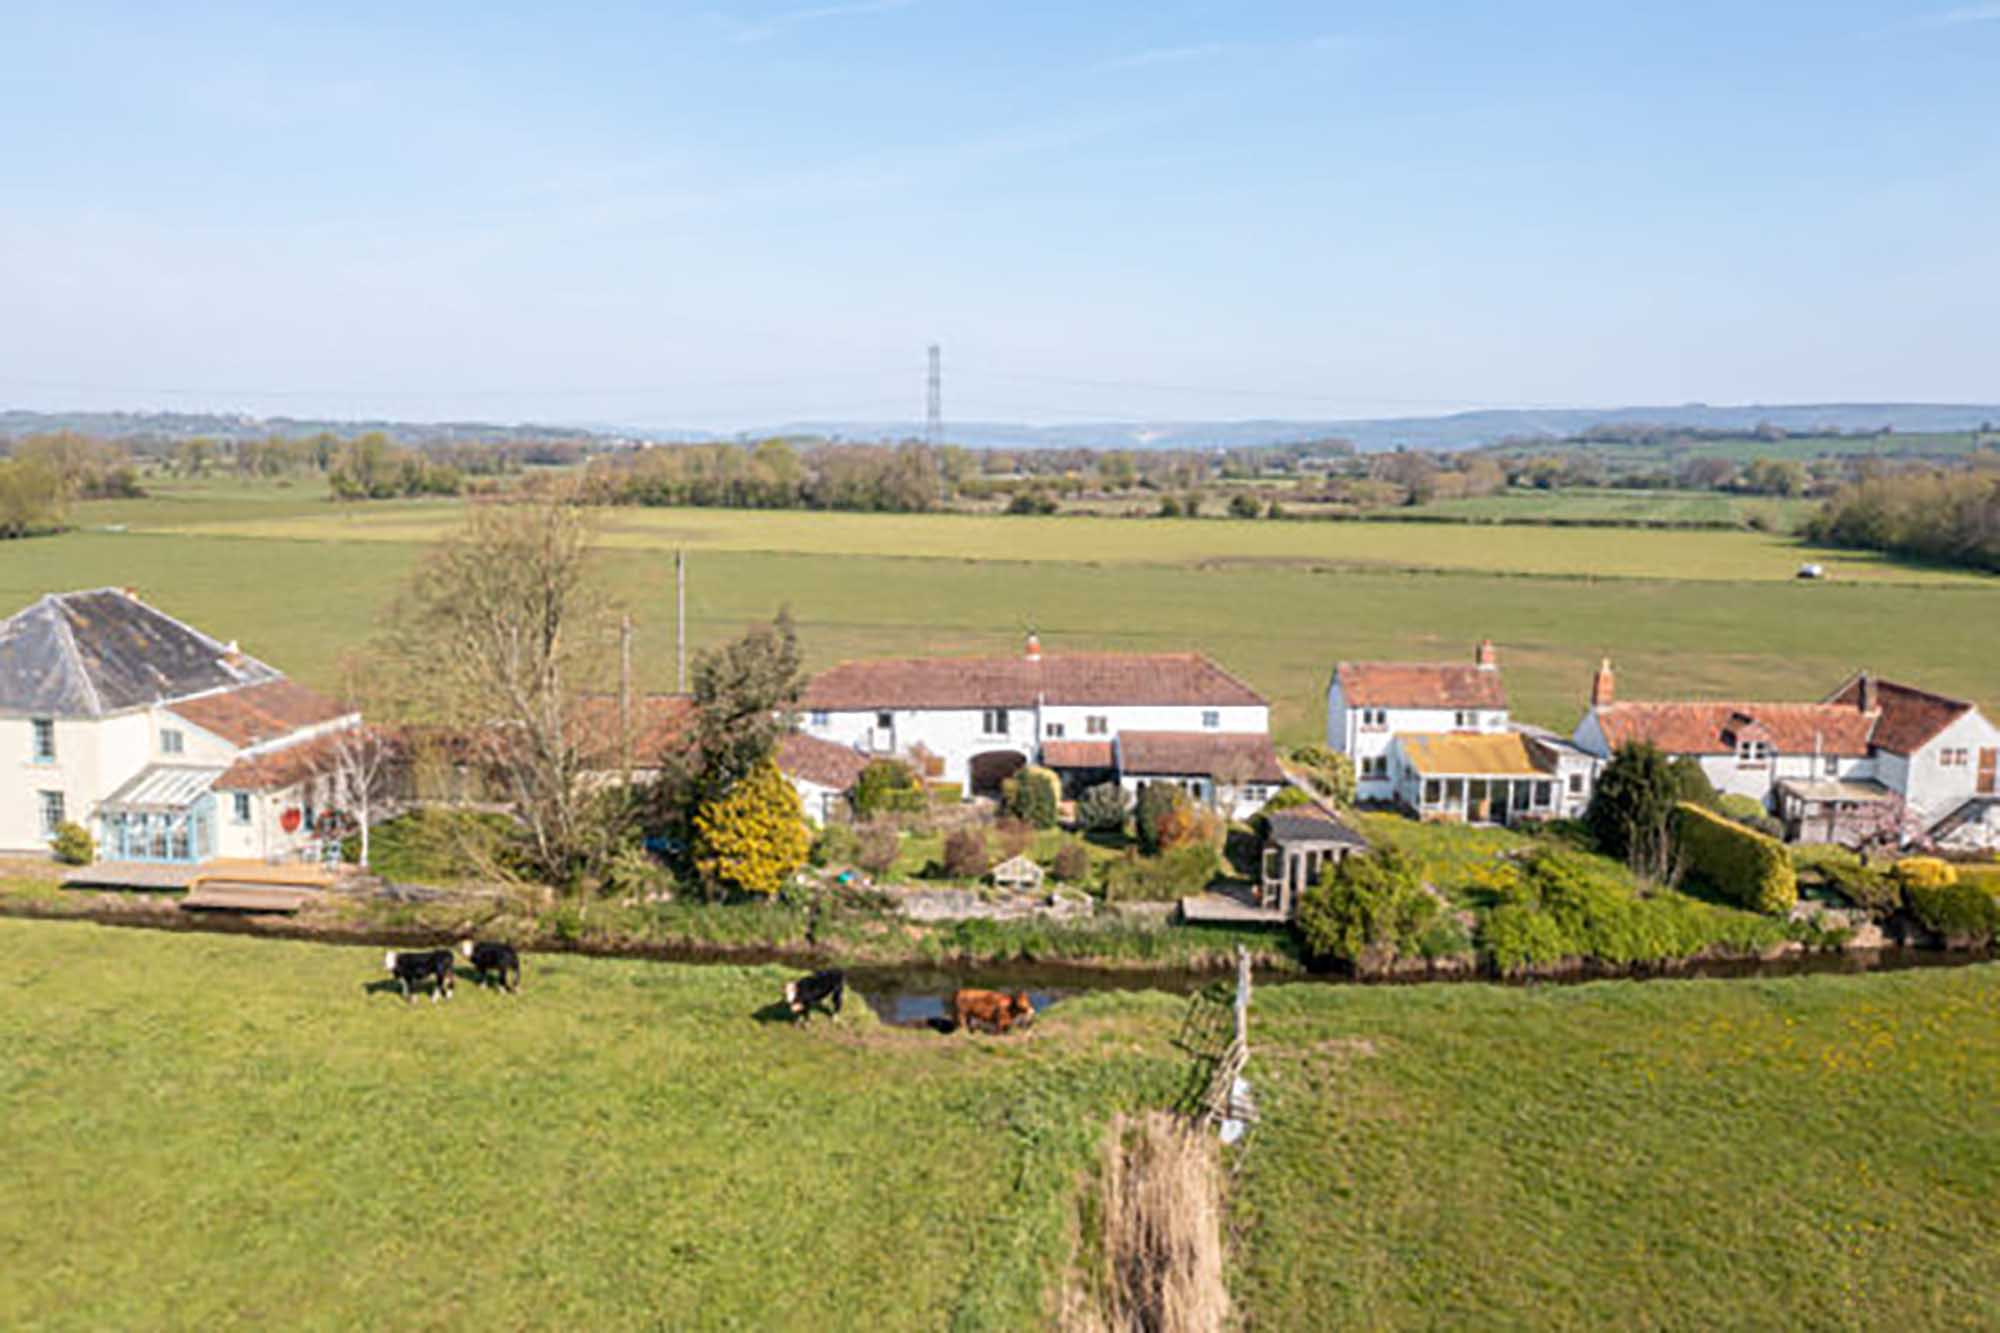 6 bedroom house , outbuildings , approx 26 acres land and woodland